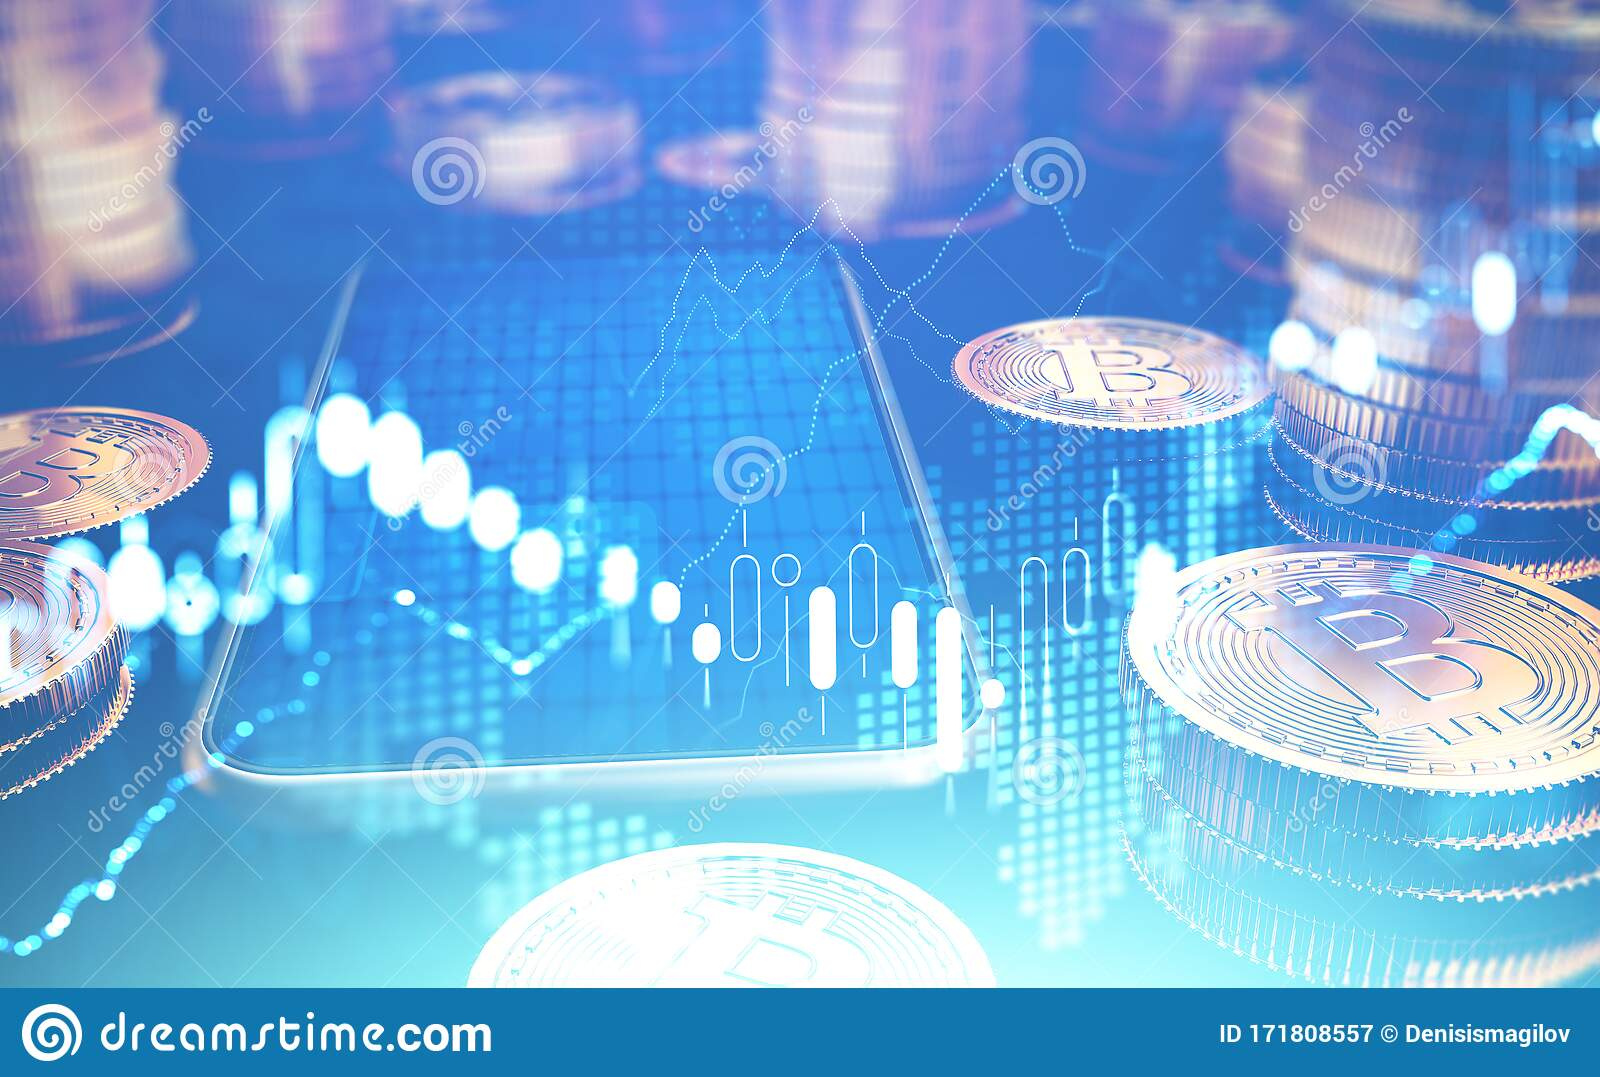 double mining cryptocurrency